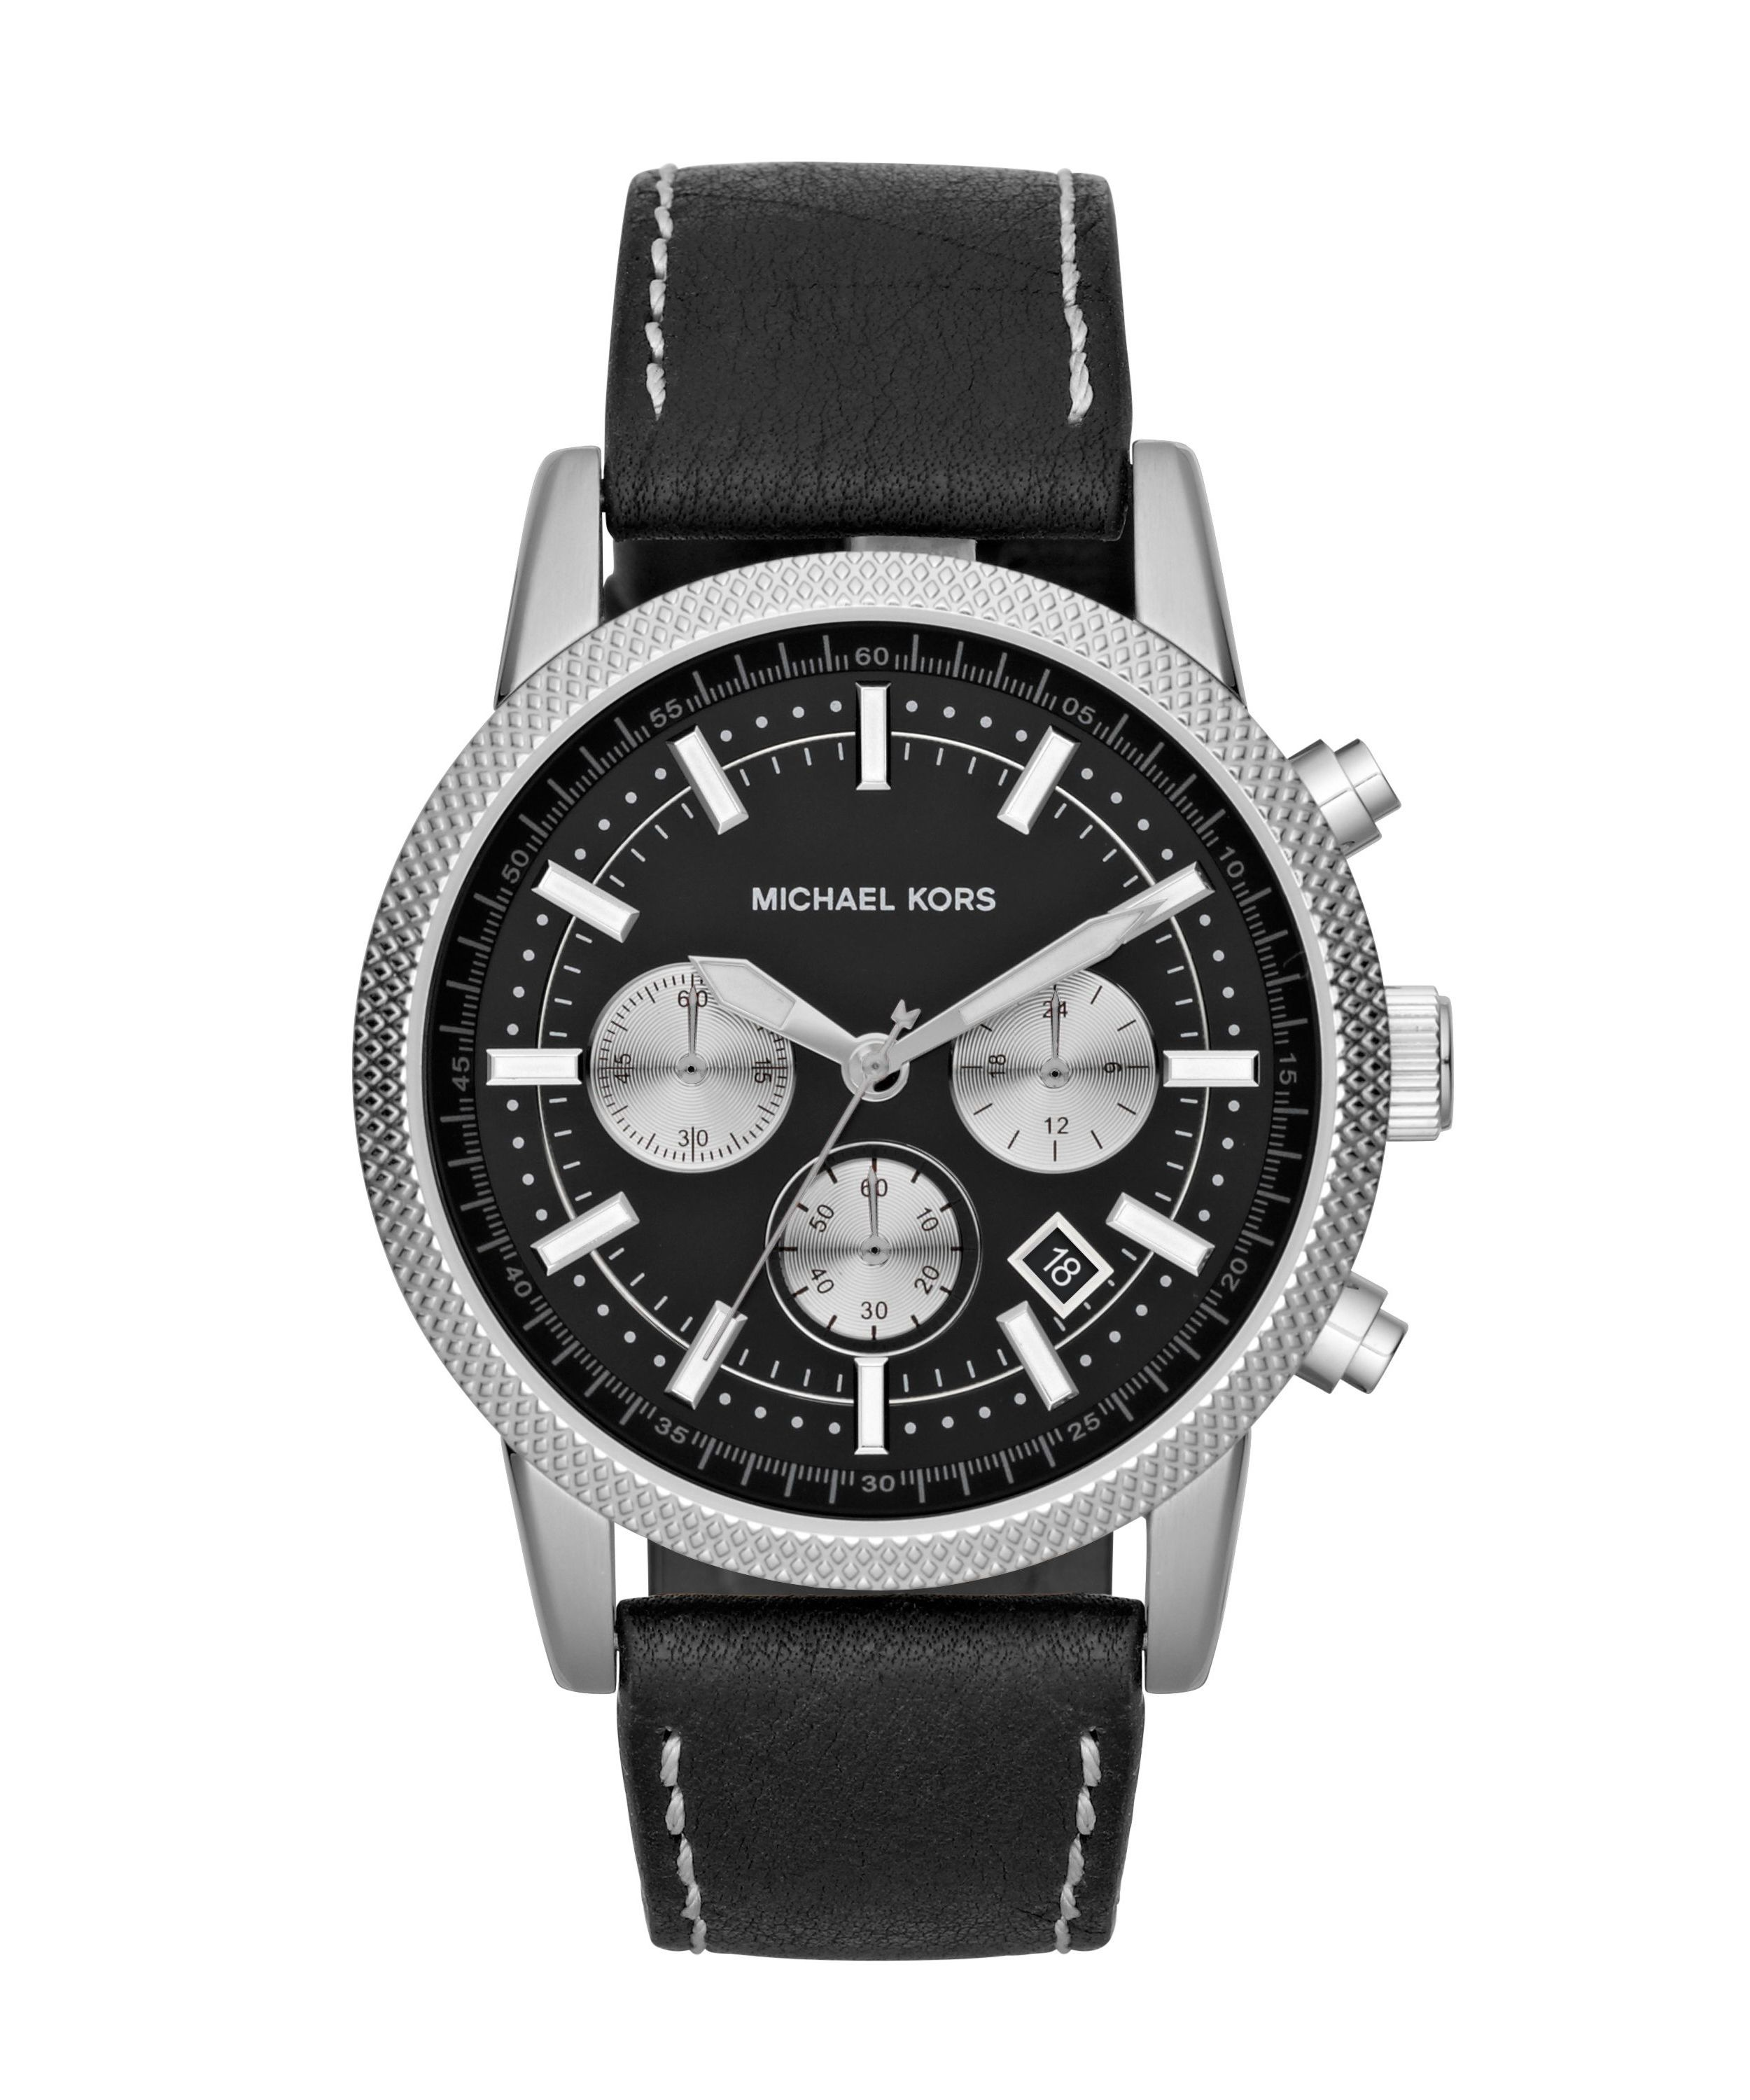 MK8310 Sport black leather mens watch